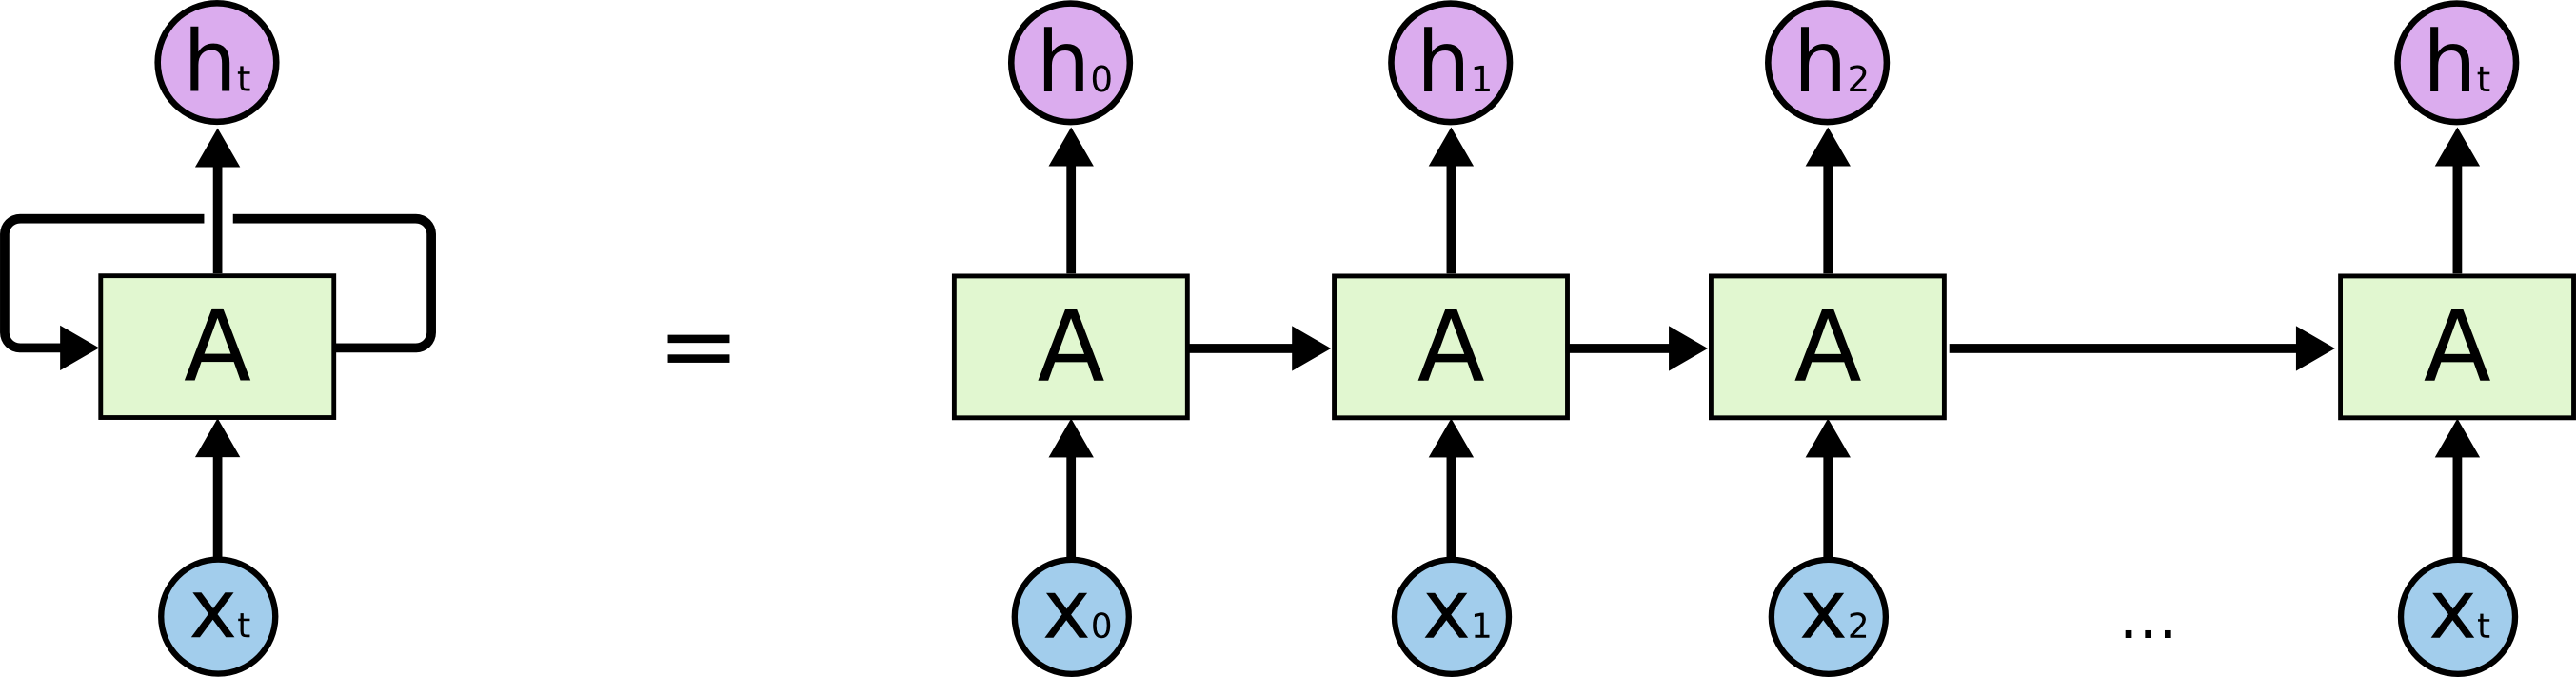 An unrolled recurrent neural network.